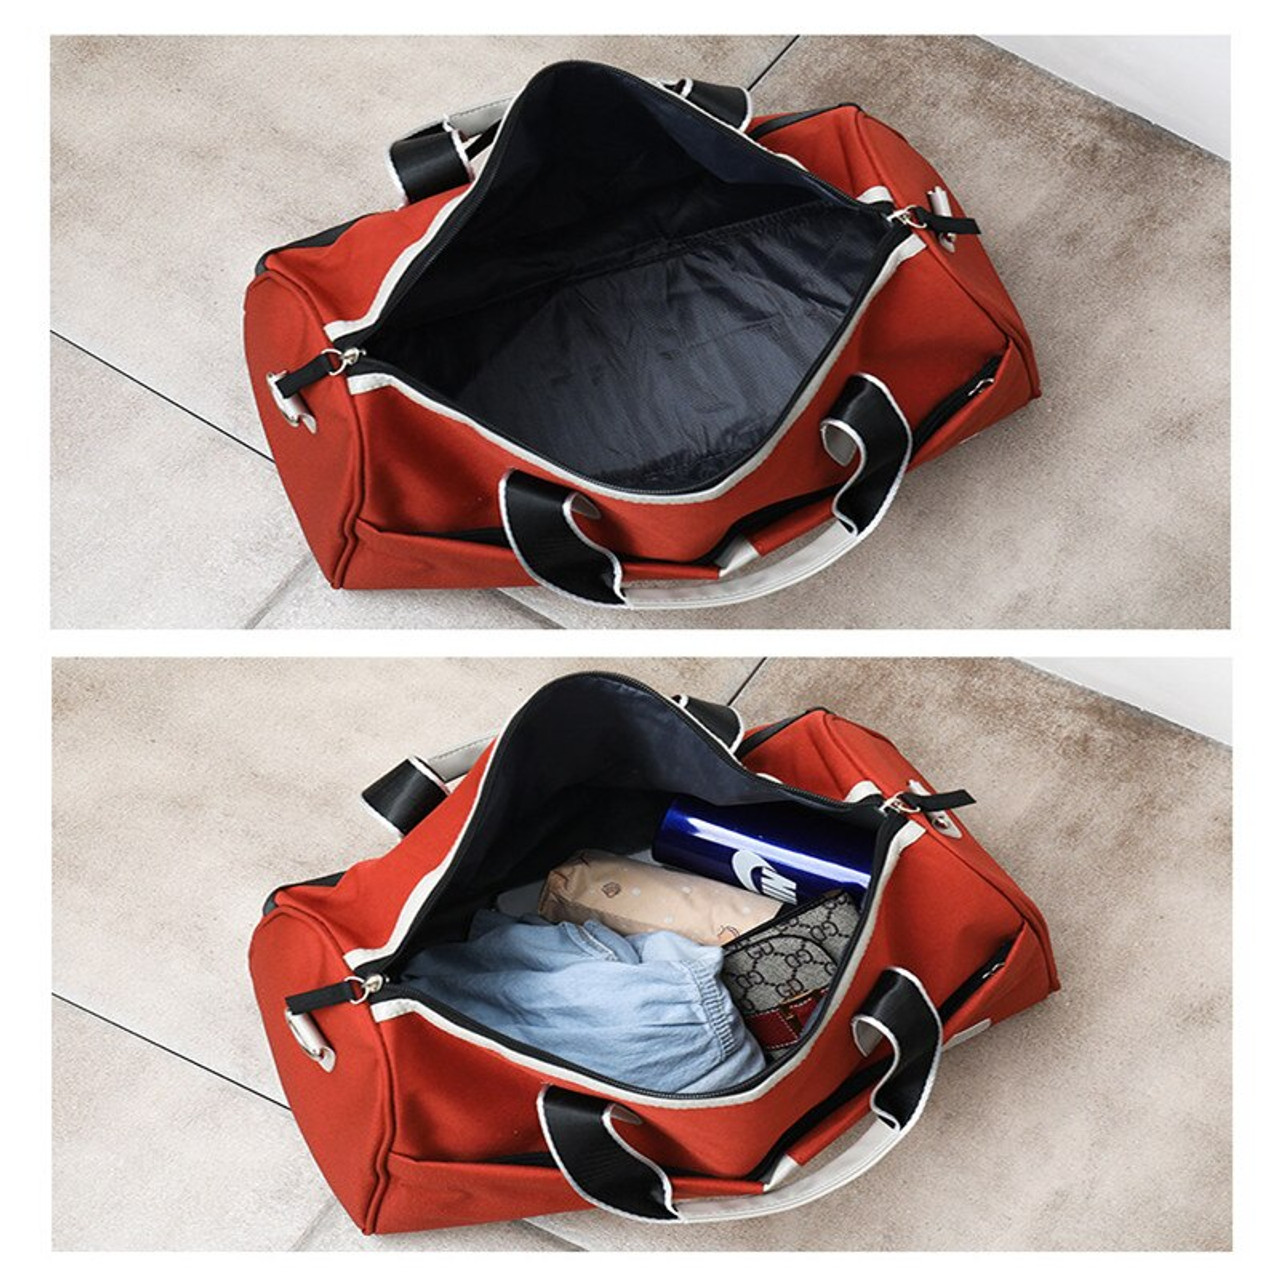 fd2a0a338 ... Women Travel Bag Men Large Capacity Canvas Carry on Duffle Bag Hand  Luggage bag Weekend Suitcase ...